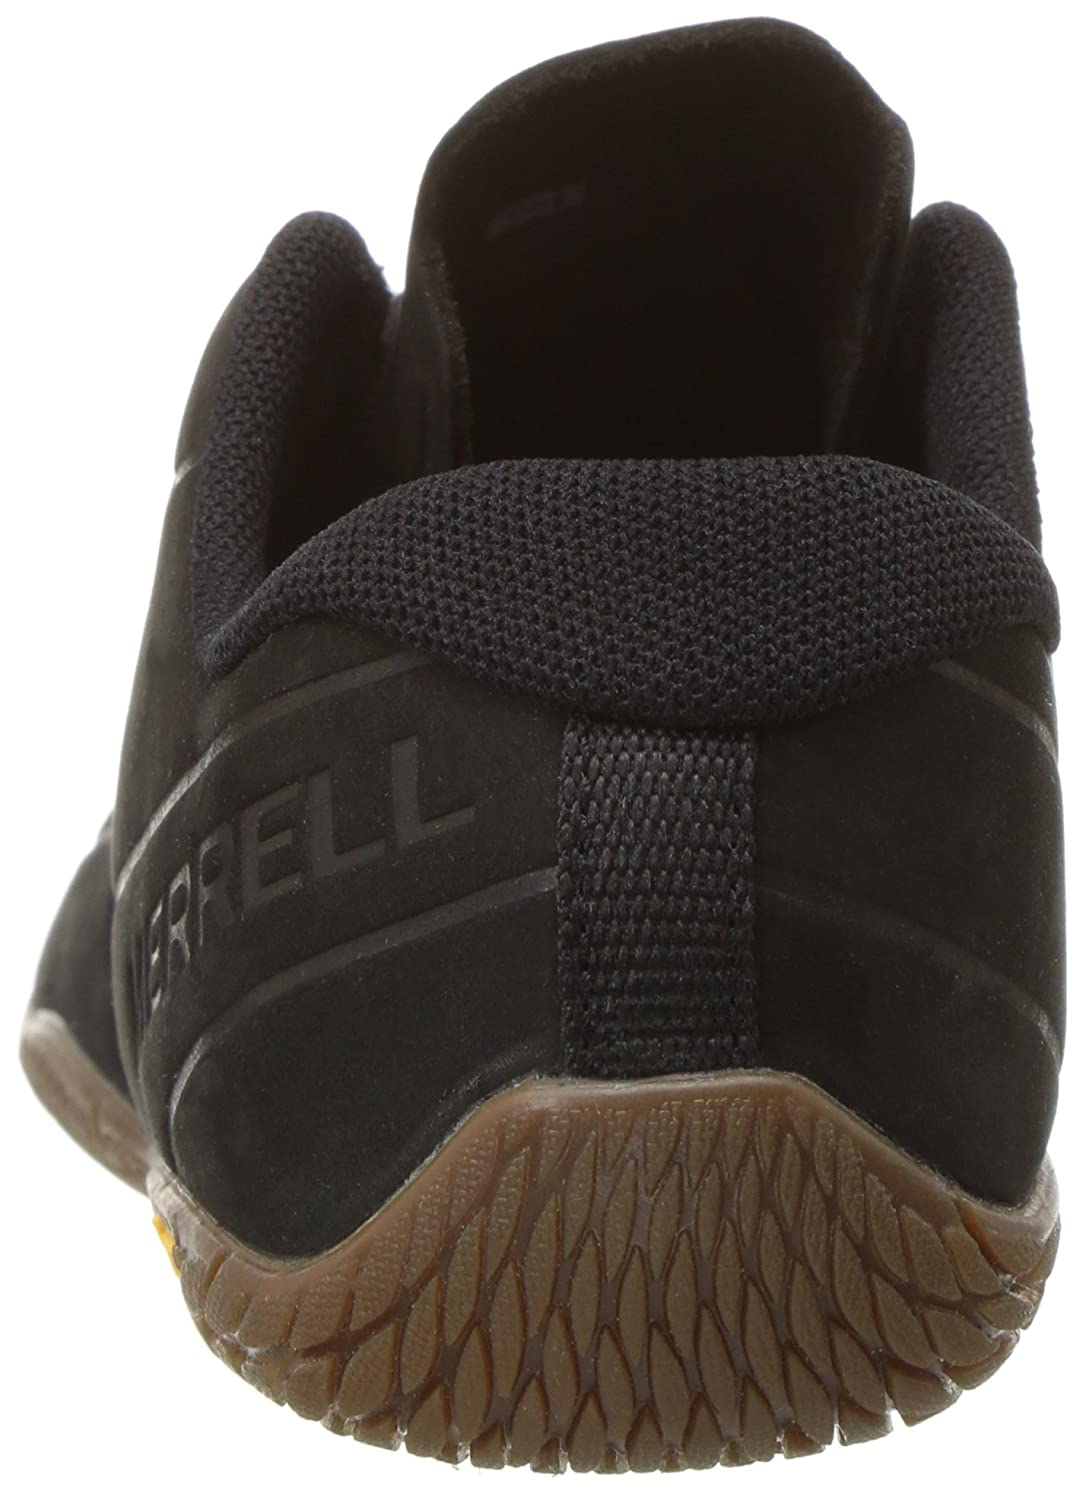 Merrell Men's Vapor Glove 3 Luna Leather Sneaker B078NH2QN2 14 M US|Black